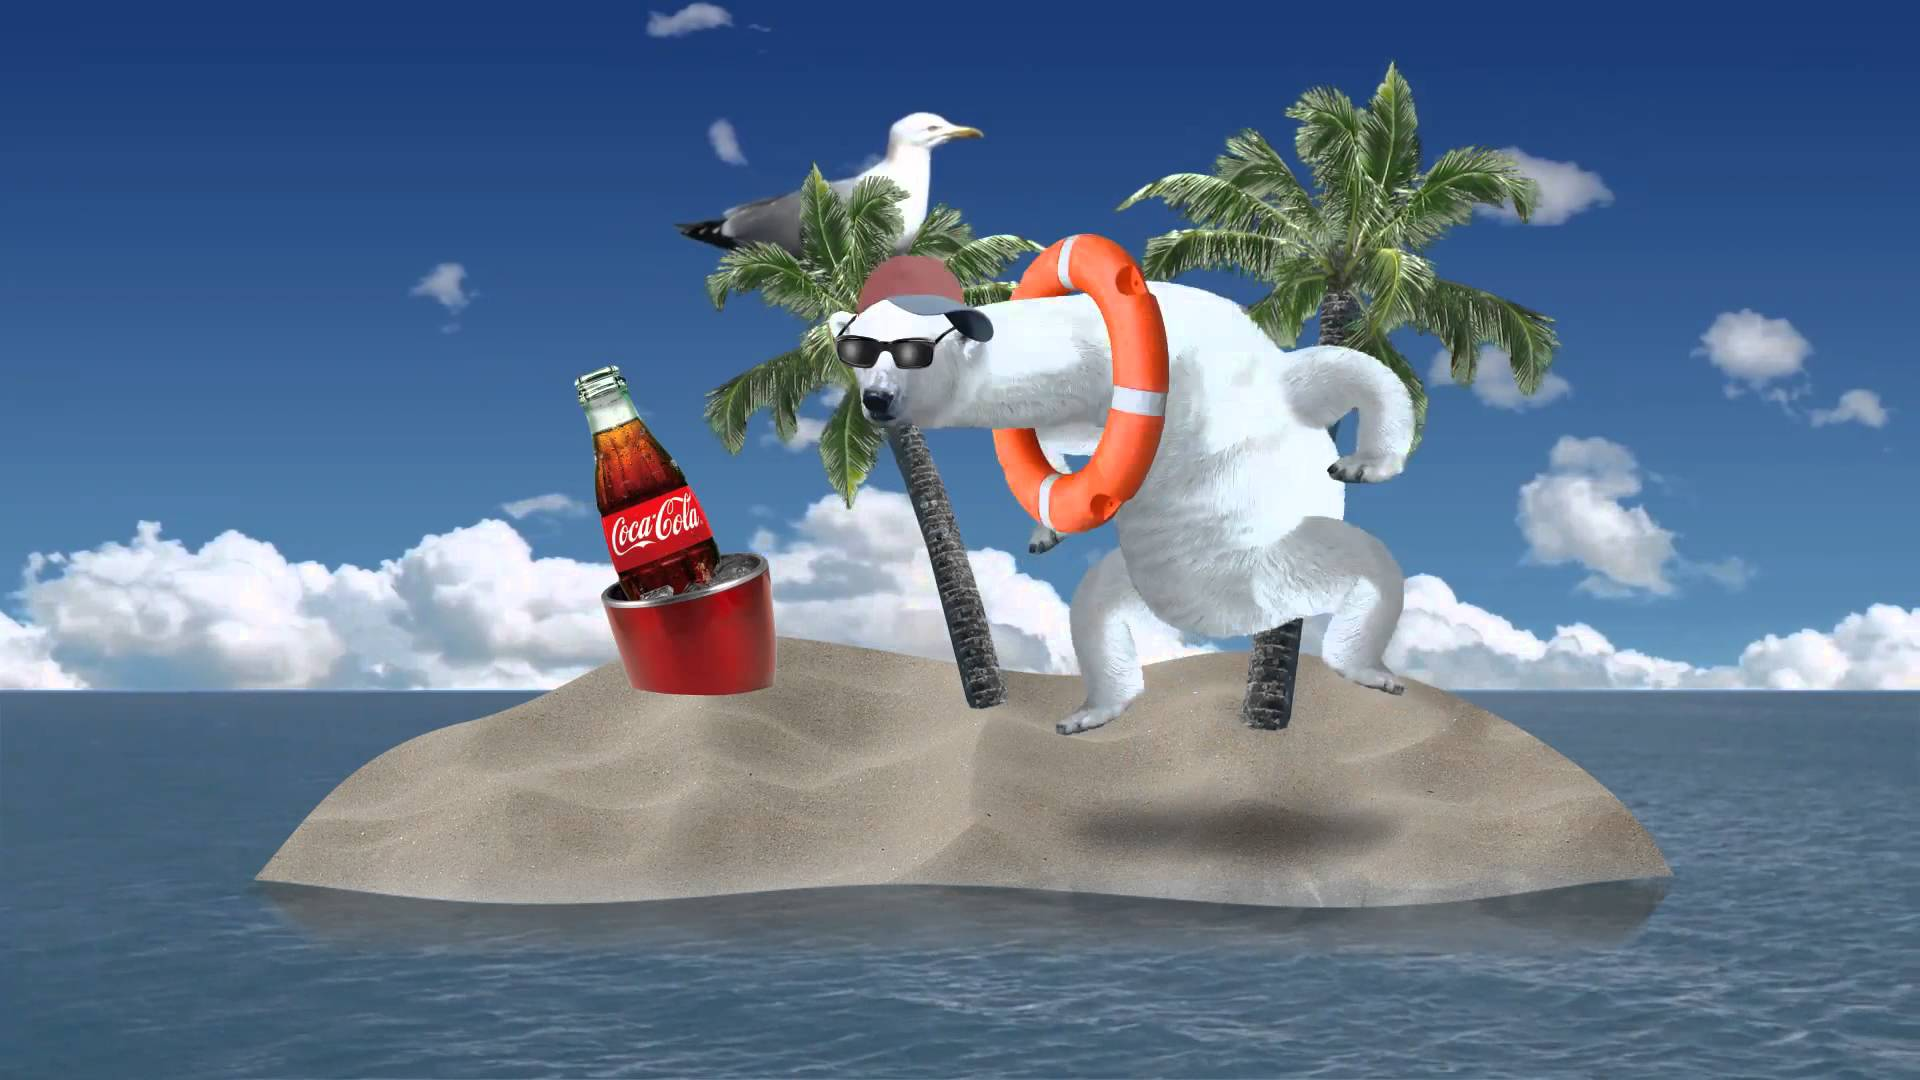 Animated Bear Wallpaper Polar Party An Animated Interactive Ad For Coca Cola By